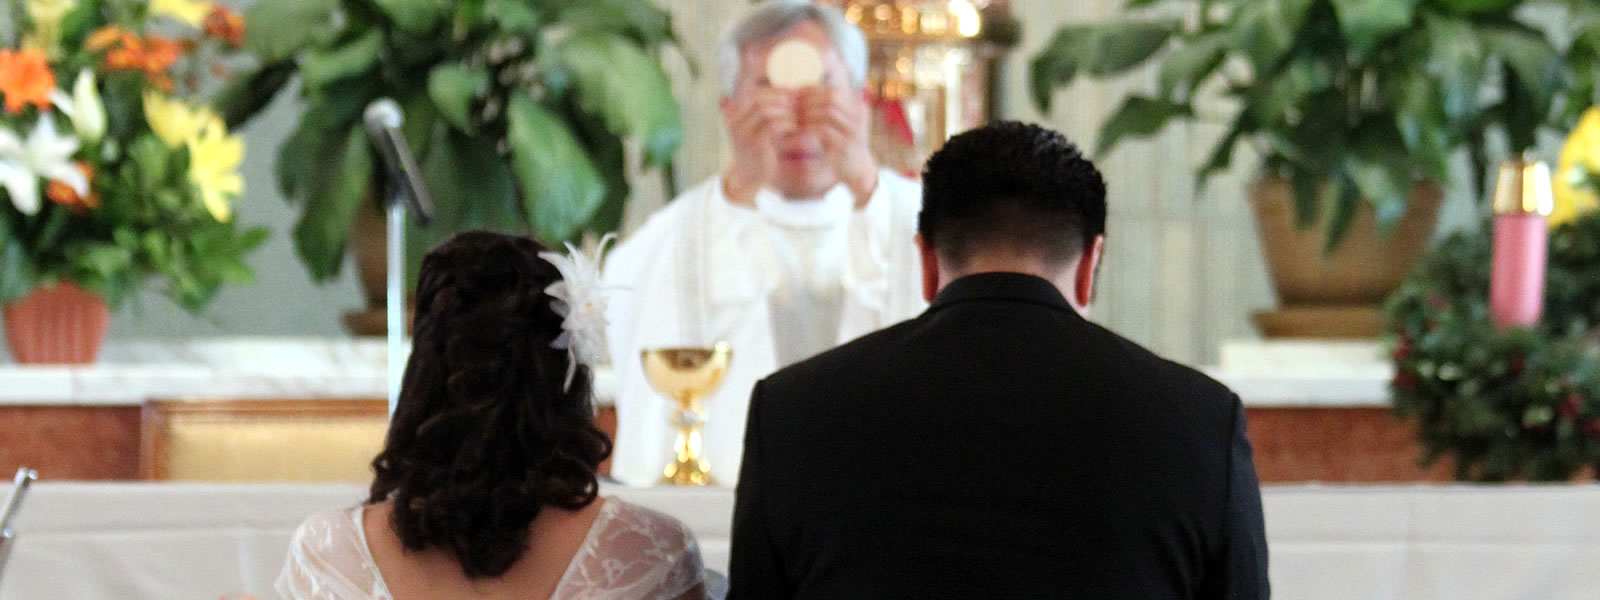 WeddingKneelingBeforeEucharist